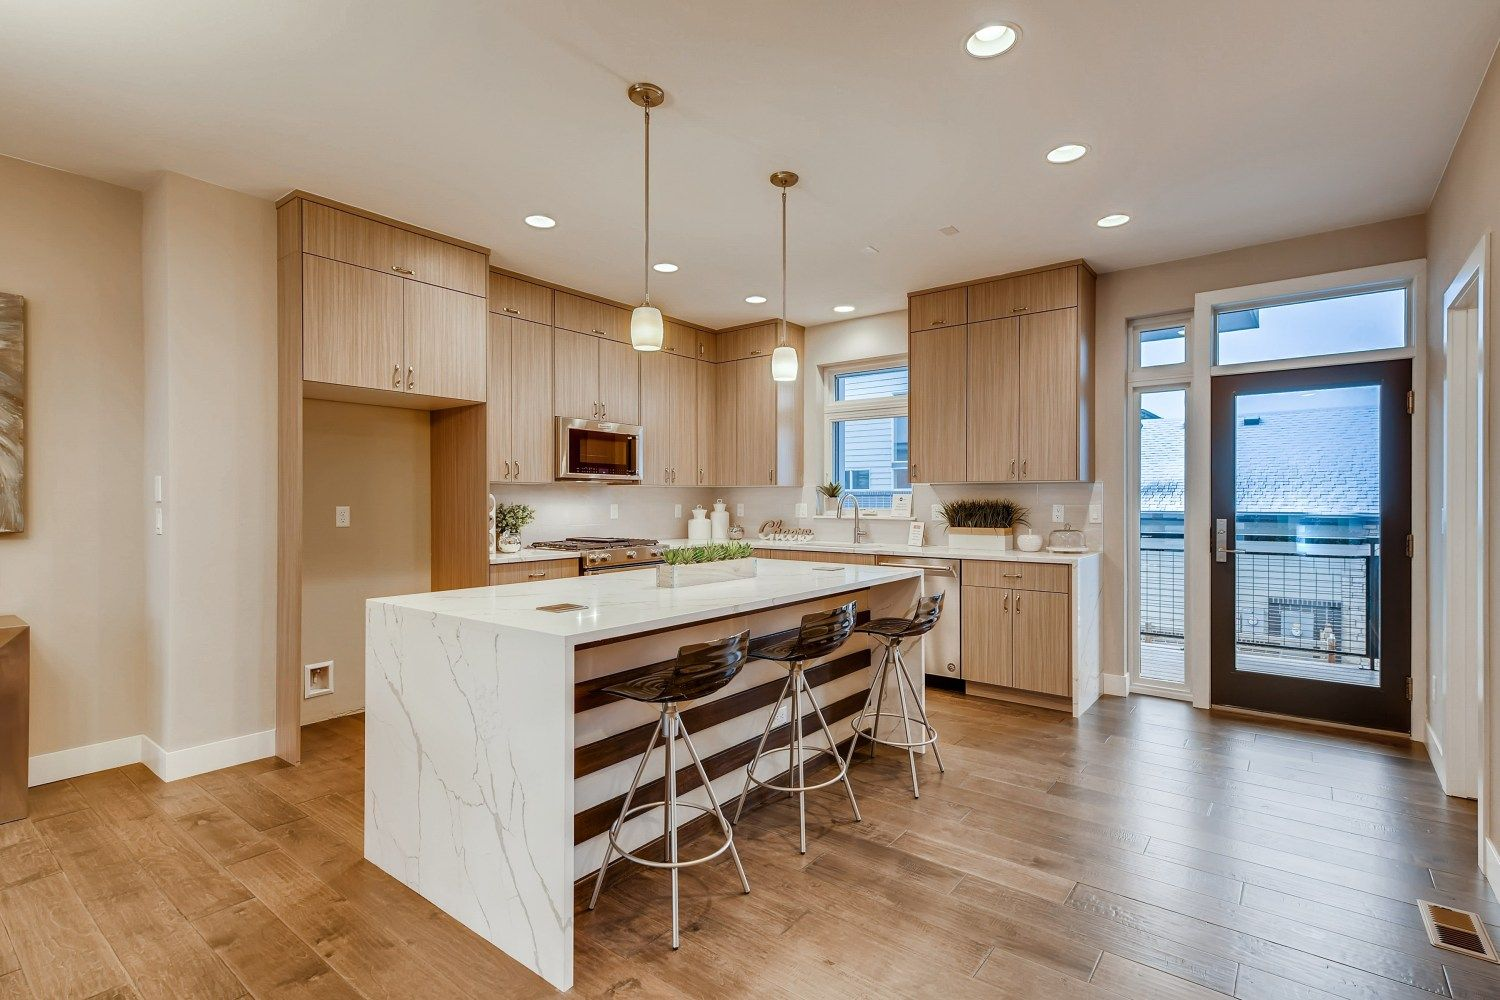 Kitchen featured in the Matador Series - Interior Unit By Koelbel Urban Homes in Denver, CO